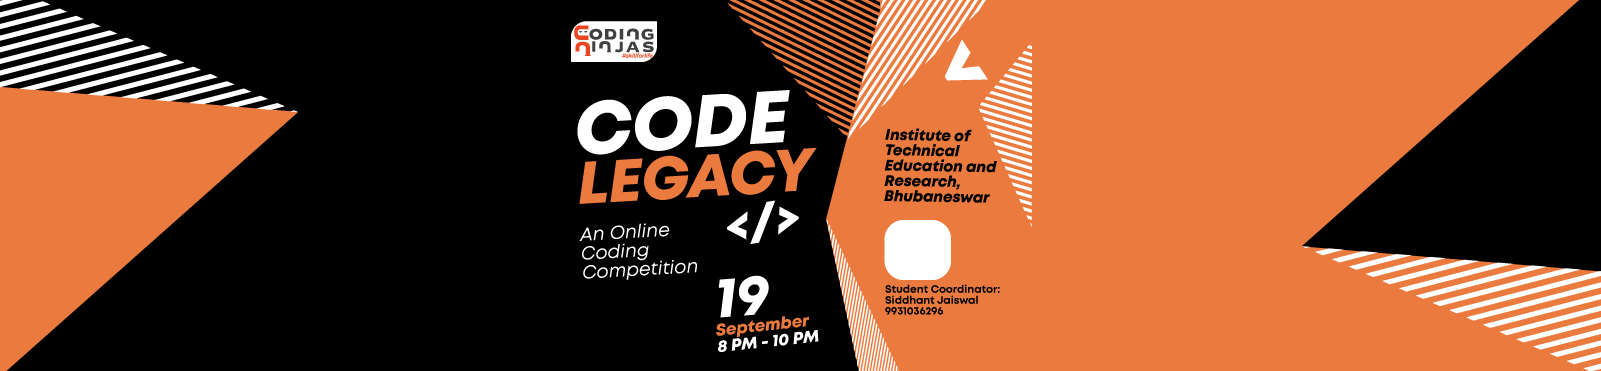 "Code Legacy at ""Institute of Technical Education and Research,Bhubaneswar"""